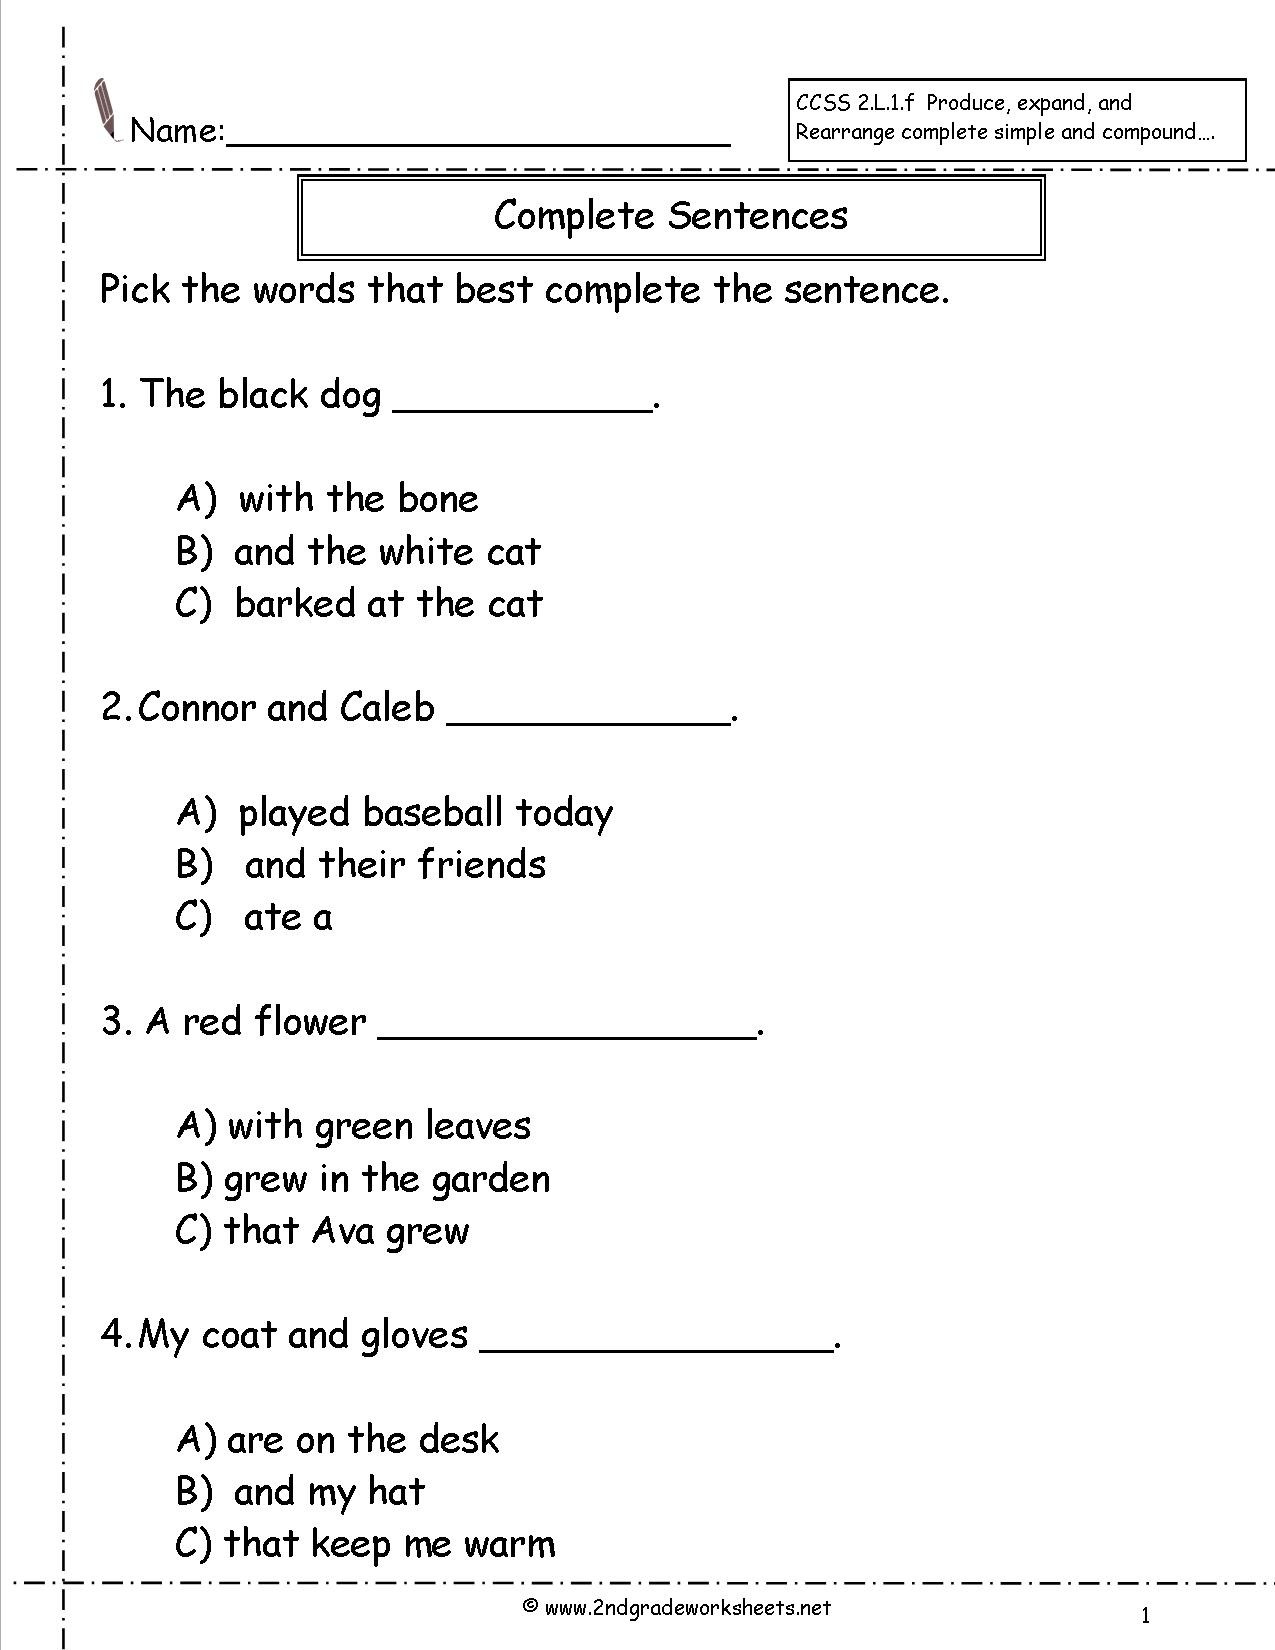 Number Sentence Worksheets 2nd Grade Second Grade Sentences Worksheets Ccss English to Plete